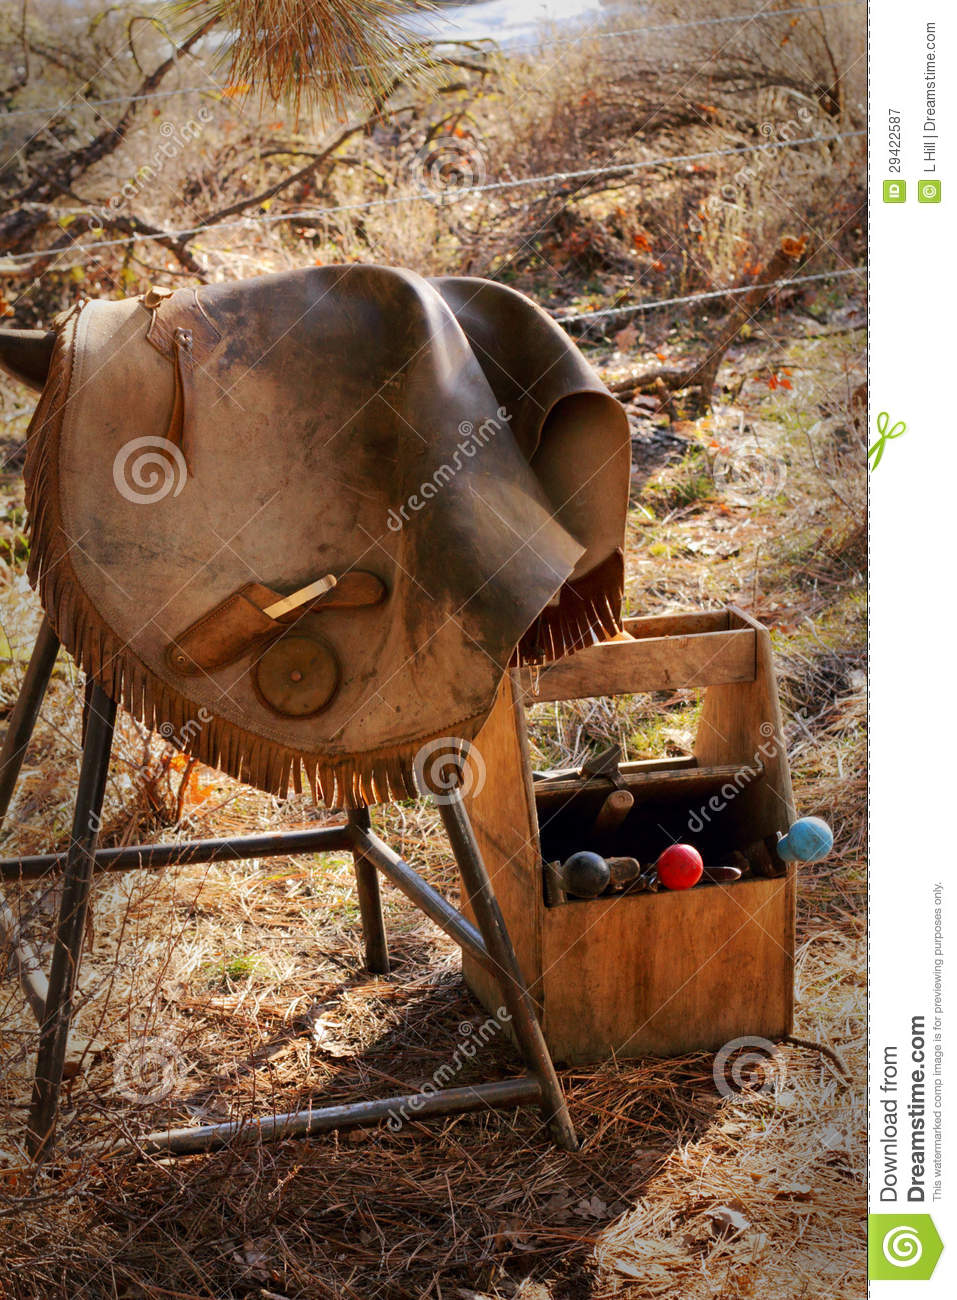 Farrier Tools Stock Photos - Download 1,333 Royalty Free ...